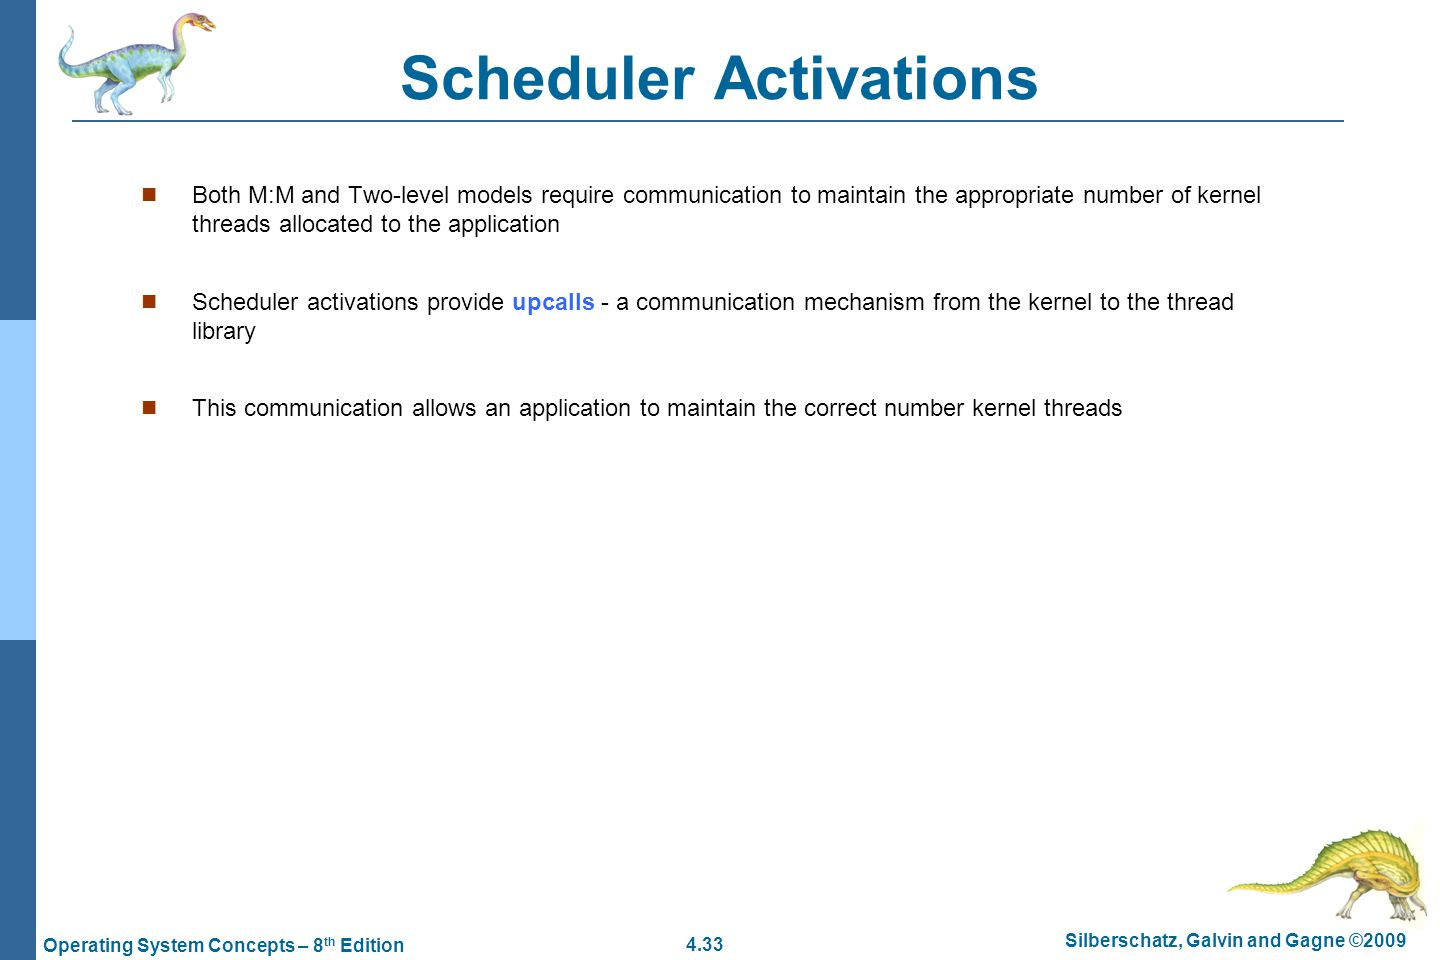 4.33 Silberschatz, Galvin and Gagne ©2009 Operating System Concepts – 8 th Edition Scheduler Activations Both M:M and Two-level models require communication to maintain the appropriate number of kernel threads allocated to the application Scheduler activations provide upcalls - a communication mechanism from the kernel to the thread library This communication allows an application to maintain the correct number kernel threads